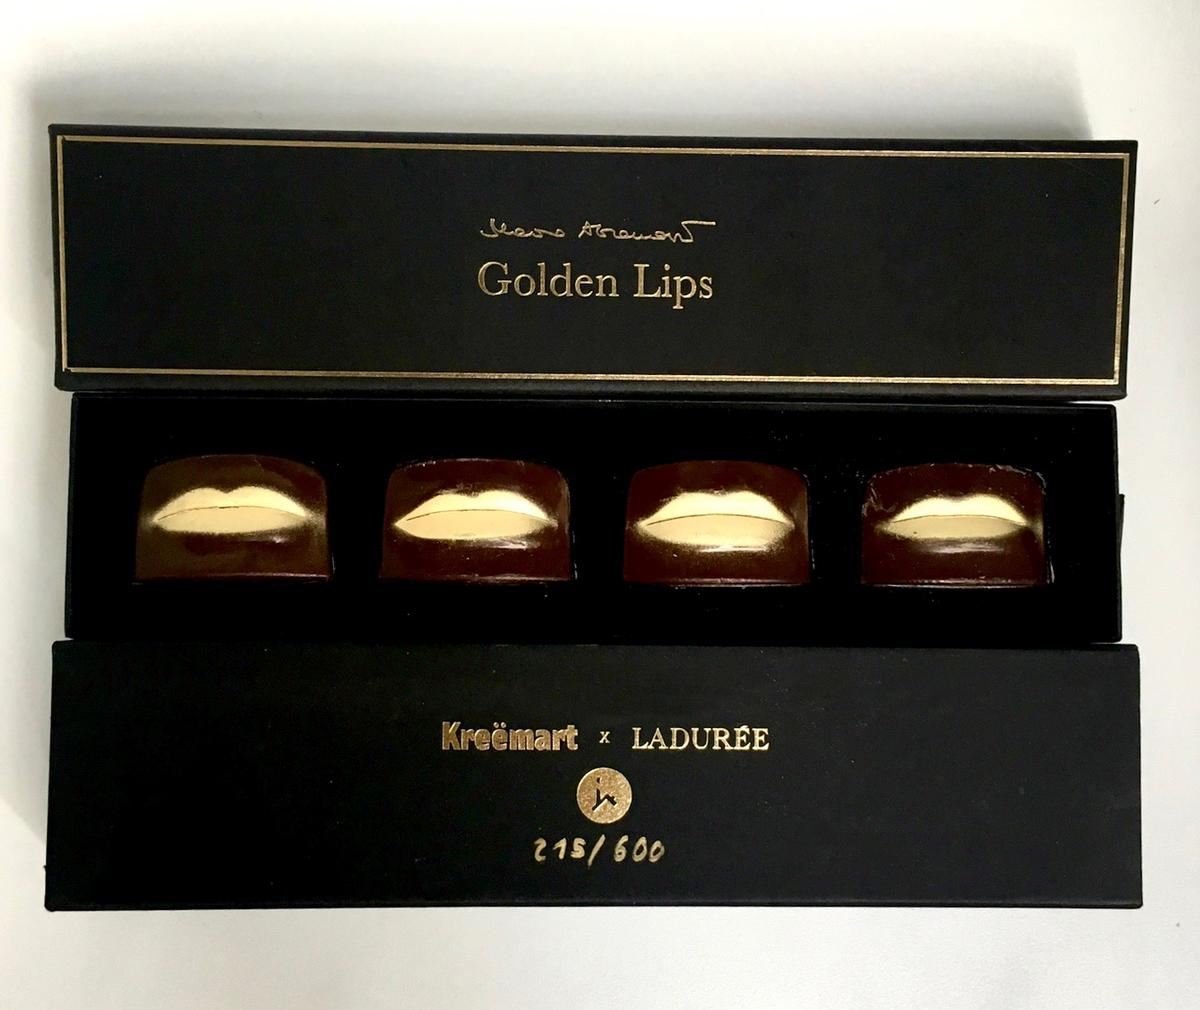 Abramovic crafted some dark chocolate moulded in the shape of her lips / Kreëmart